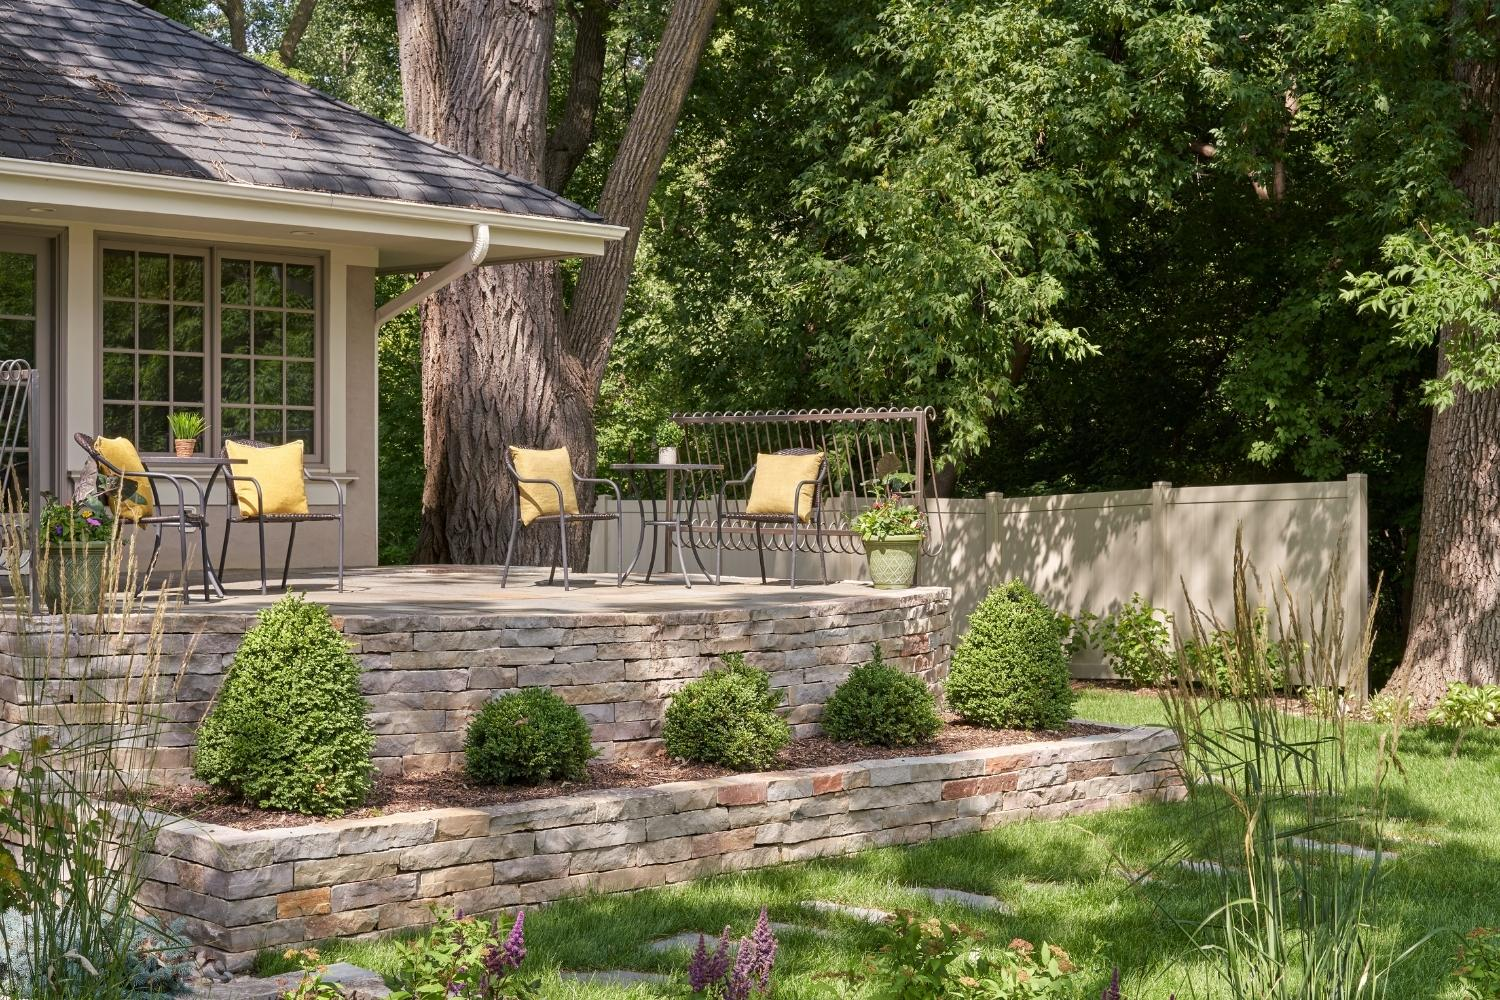 Cafe patio with wicker chairs, low retaining walls, shrubs, steppers